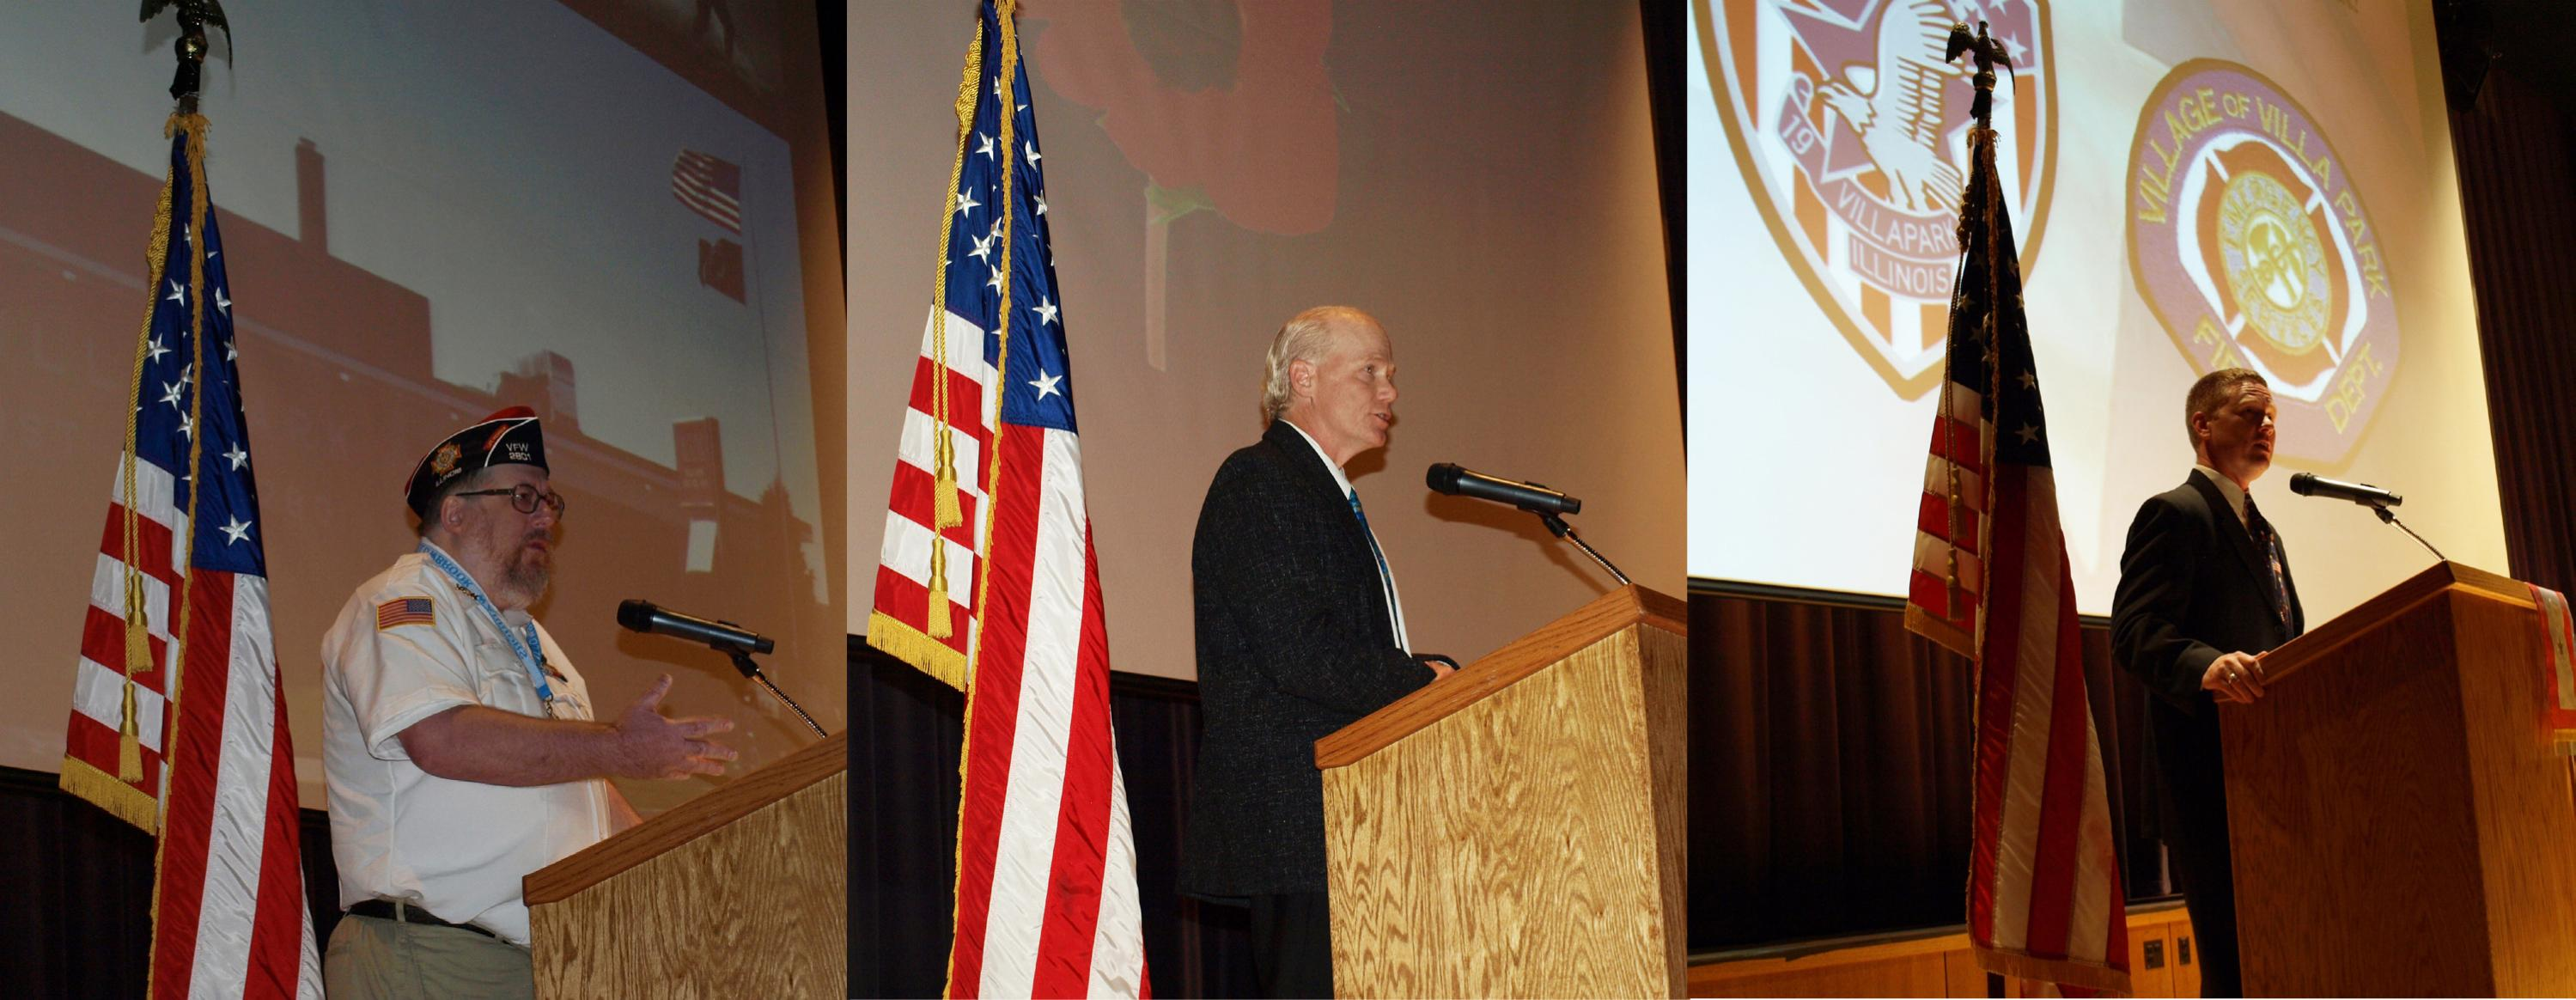 District 88 honors veterans through Veterans Day events